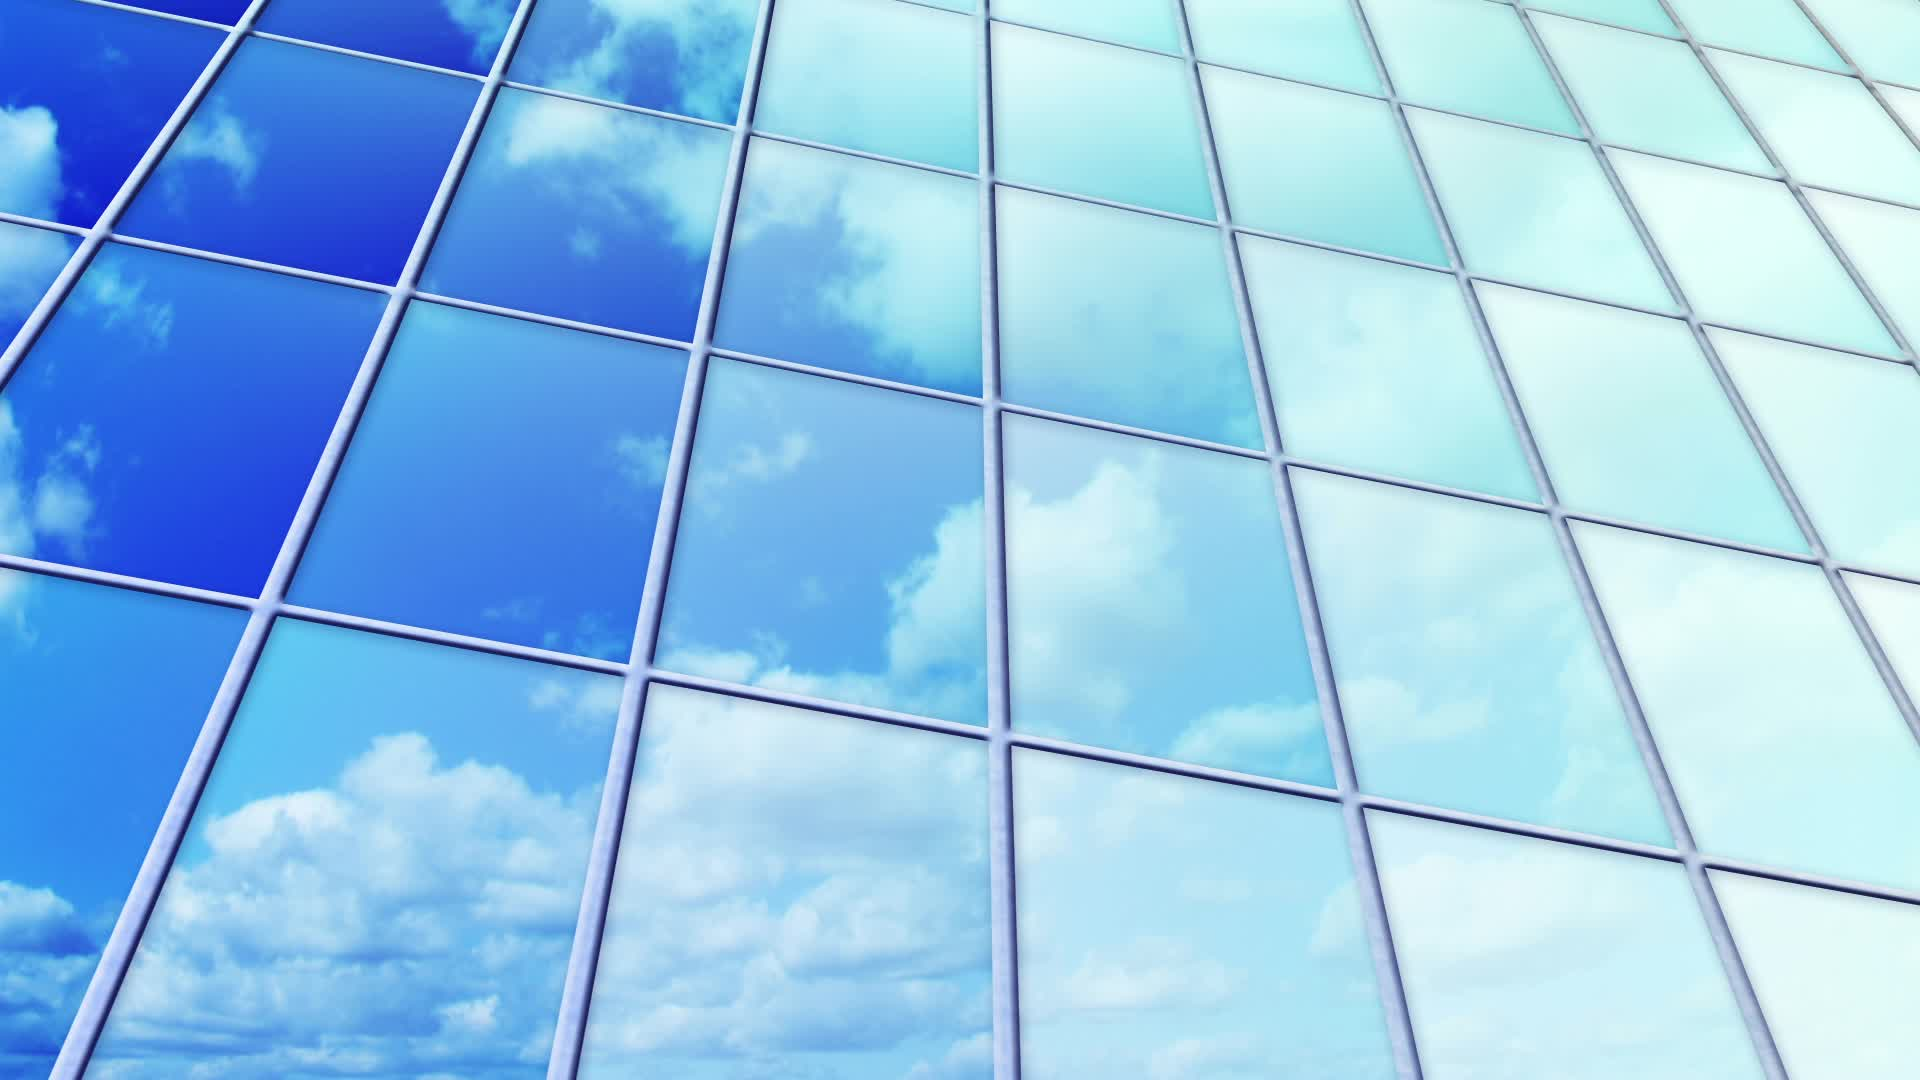 Clouds reflected in windows of skyscraper loop ~ Hi Res #11878301